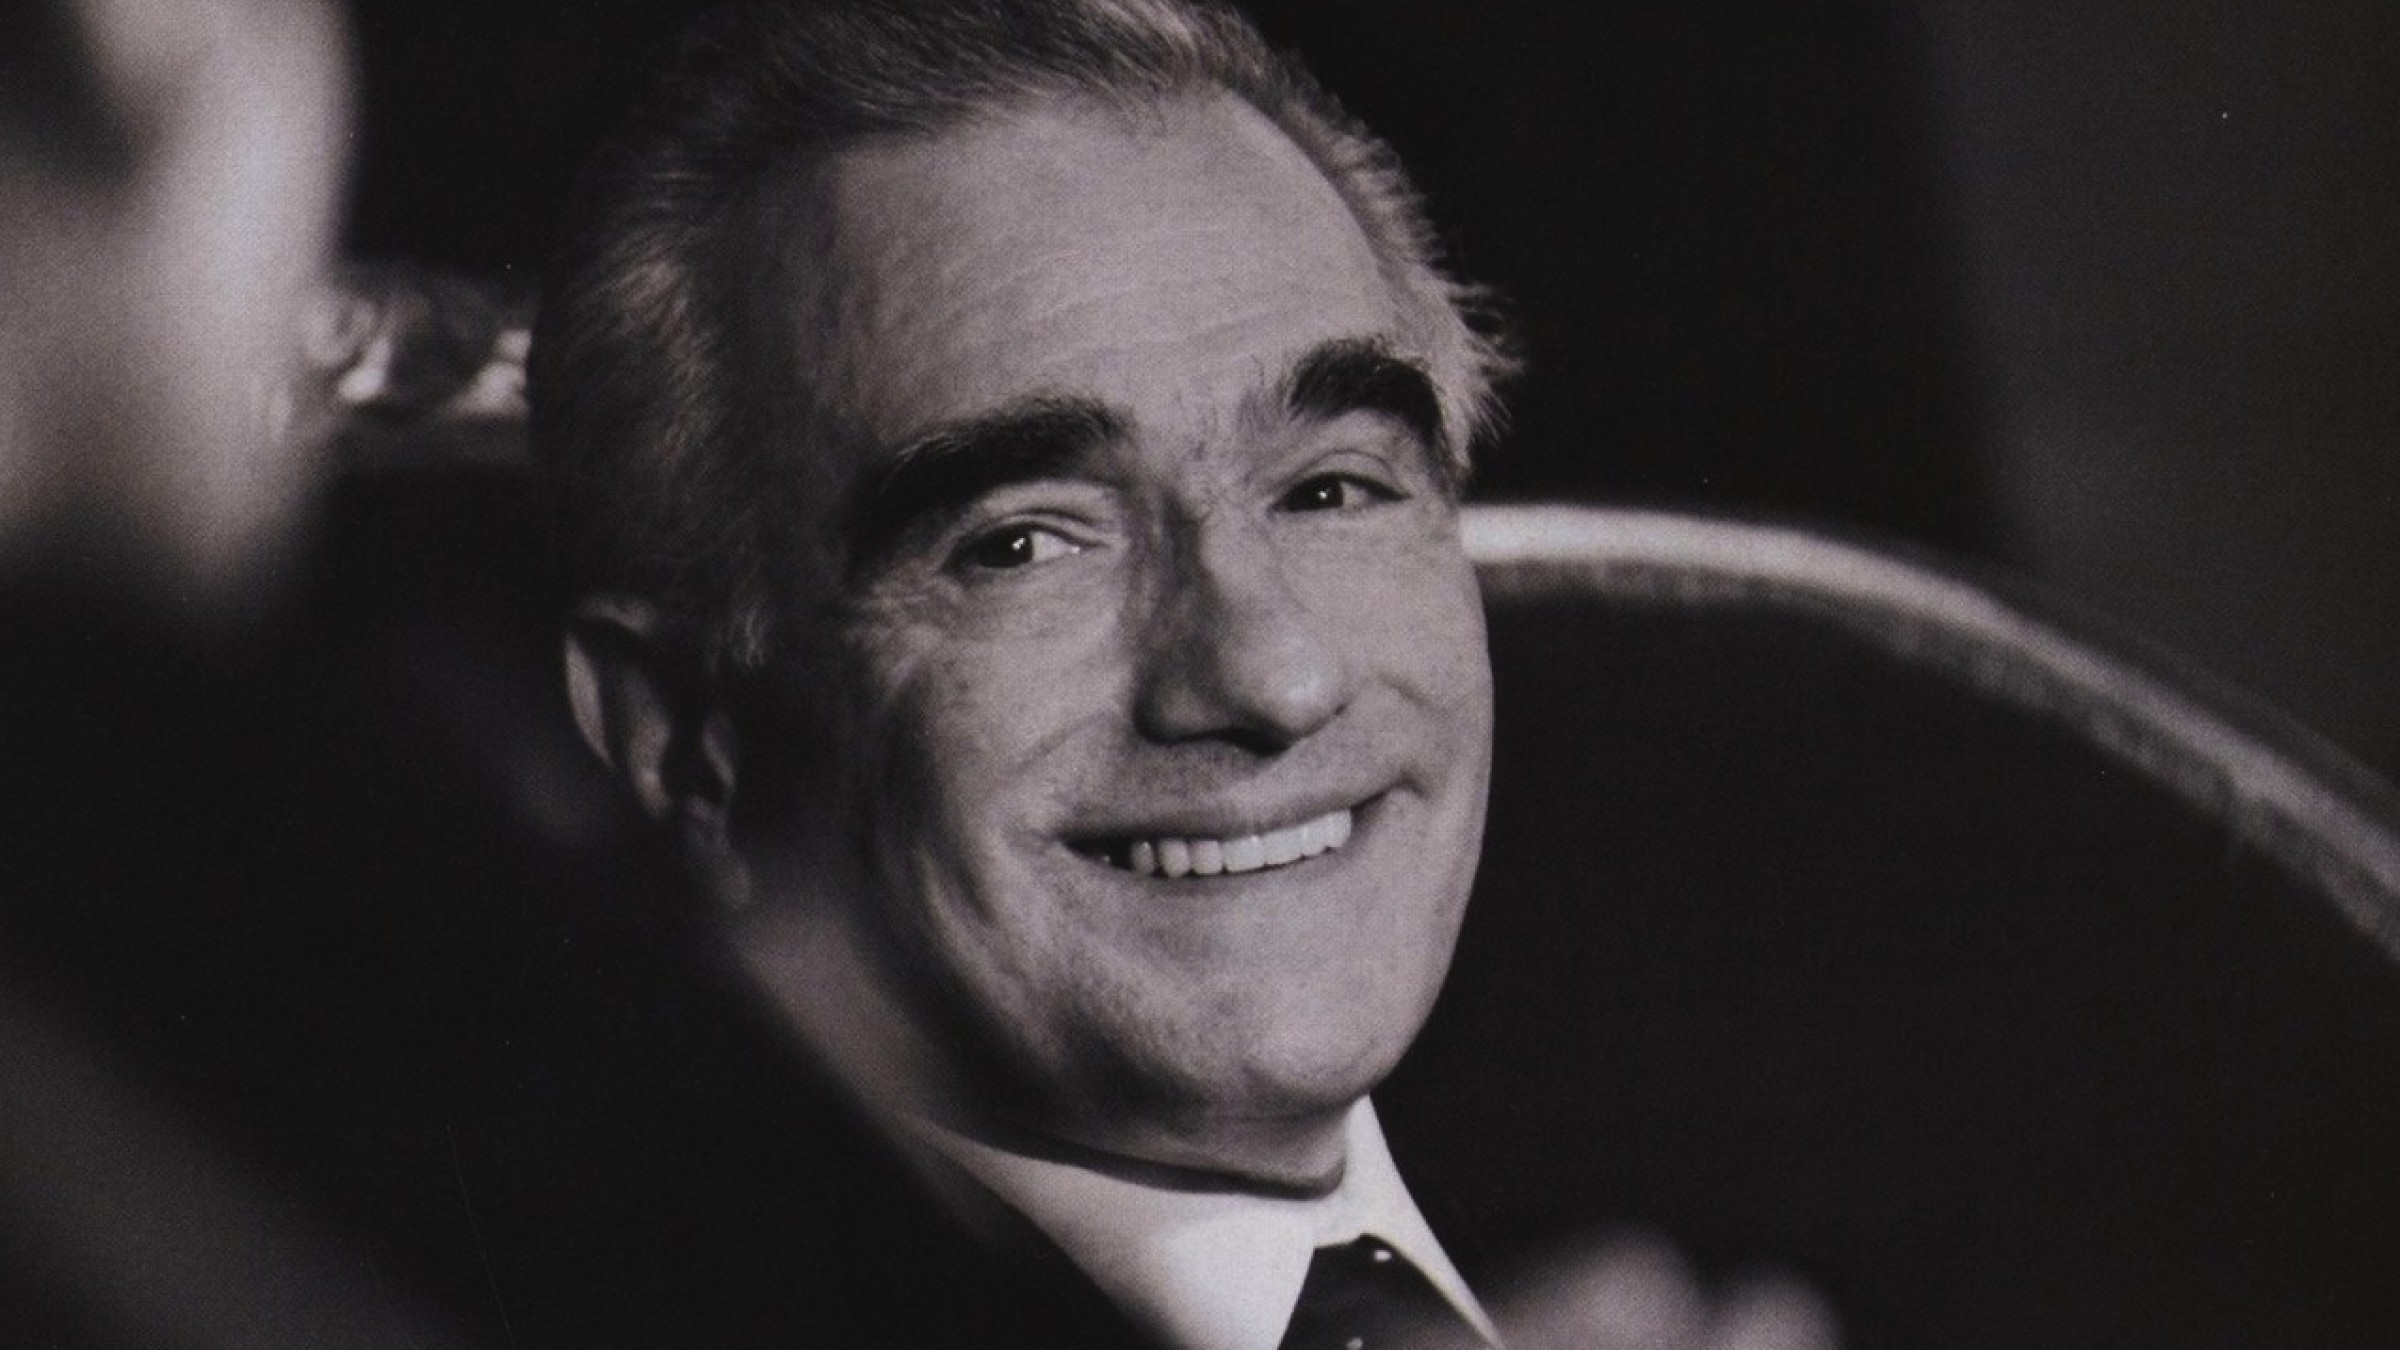 Martin Scorsese Highlights Cinema's Great Risk-Takers, from Welles to Cassavetes